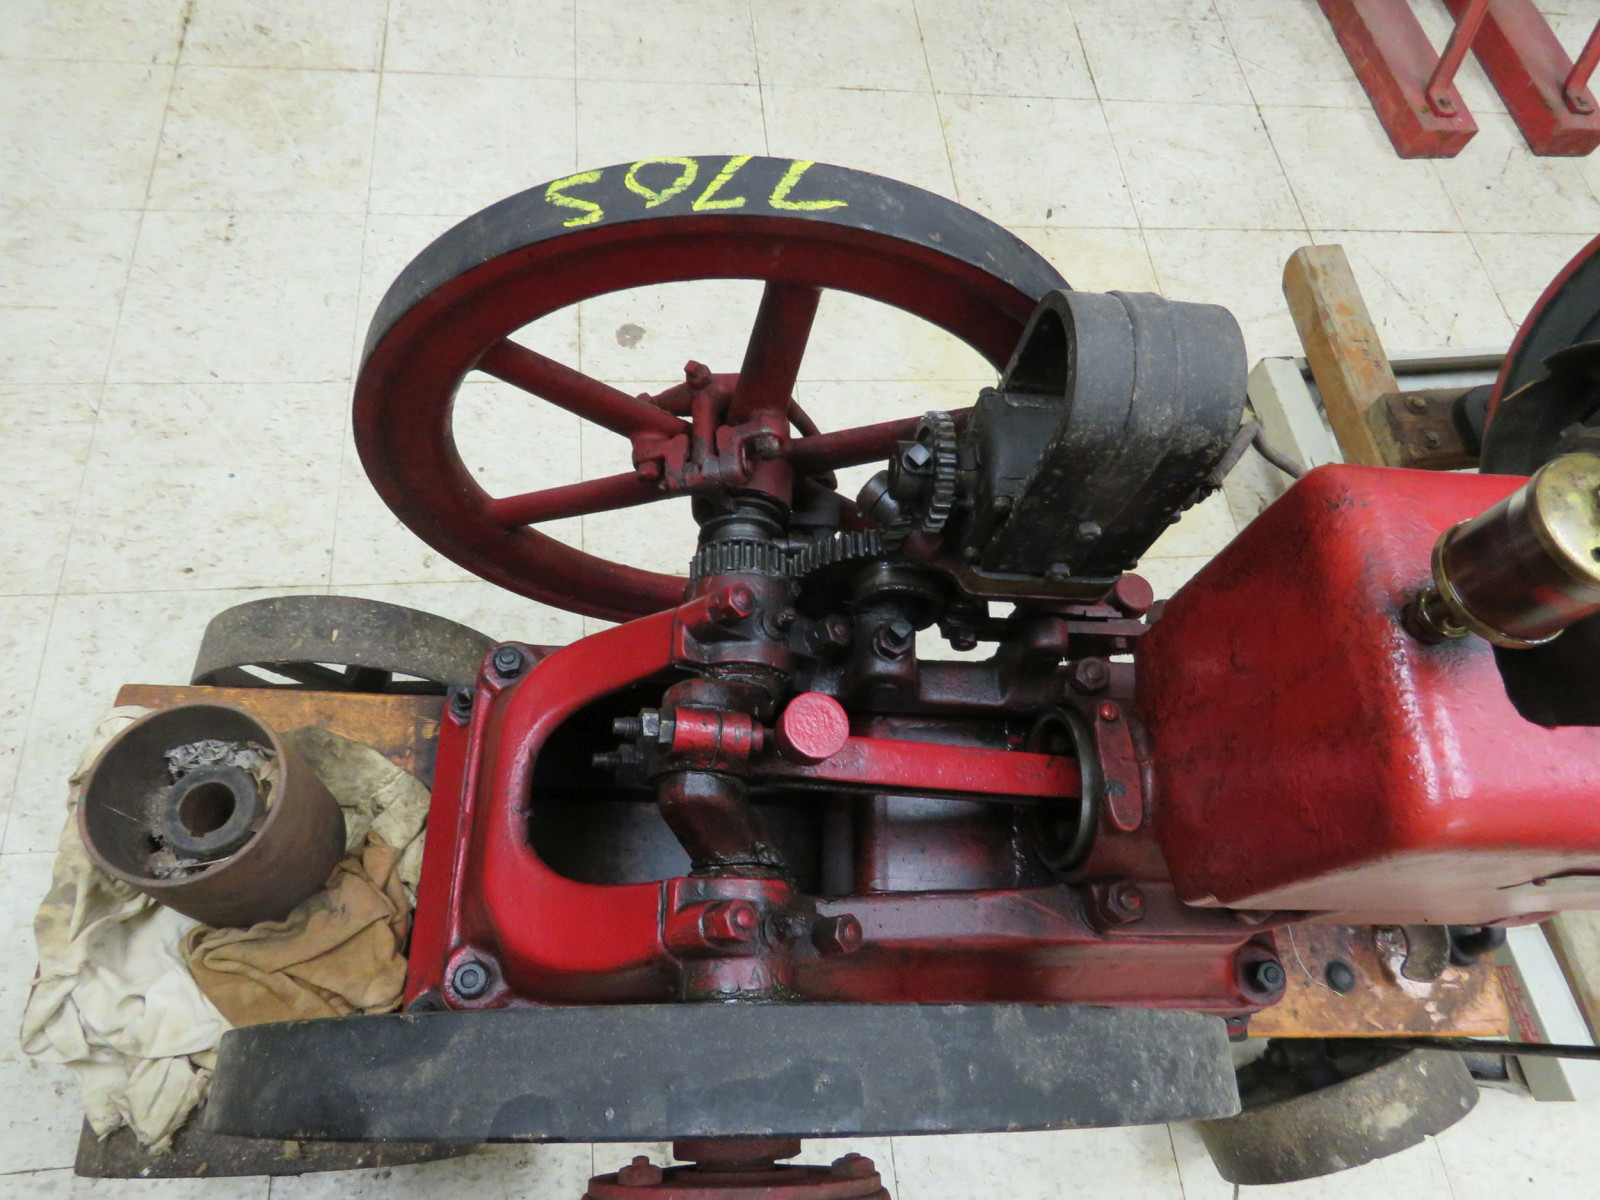 United Type A 2 1/4hp Stationary Engine 201159 - Image 6